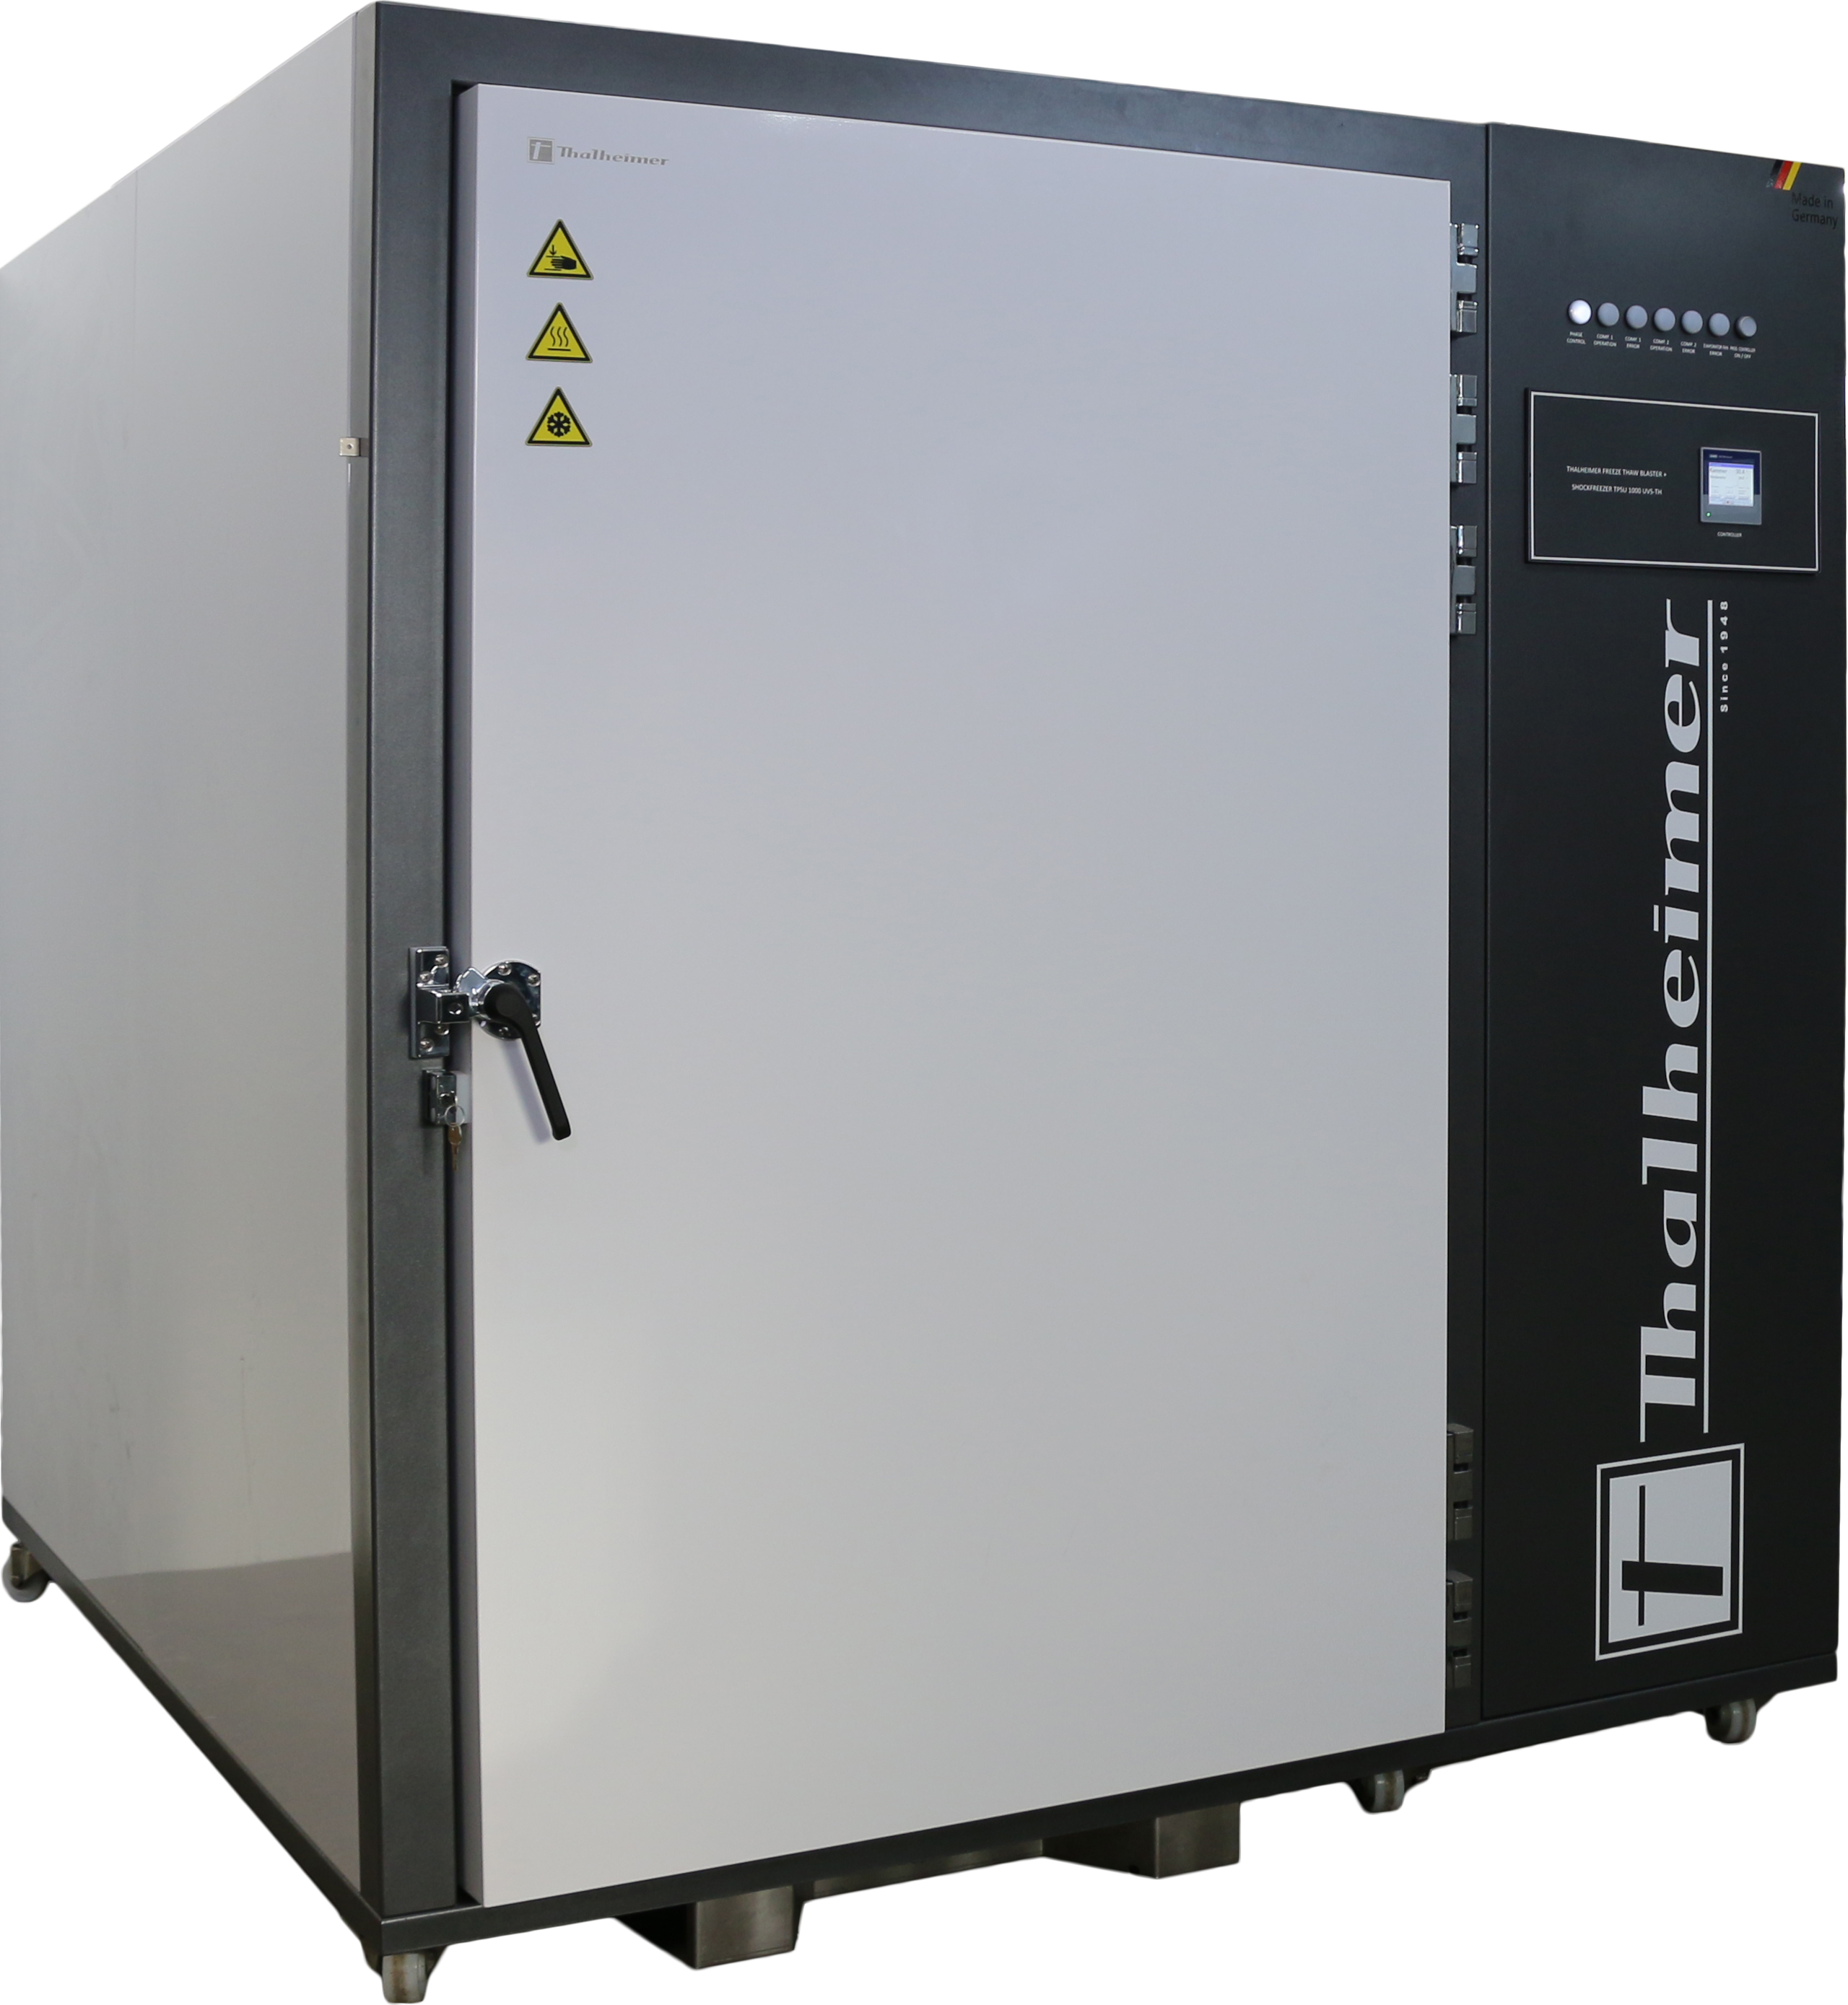 Pharmaceutical Shock Freezer and Thawer